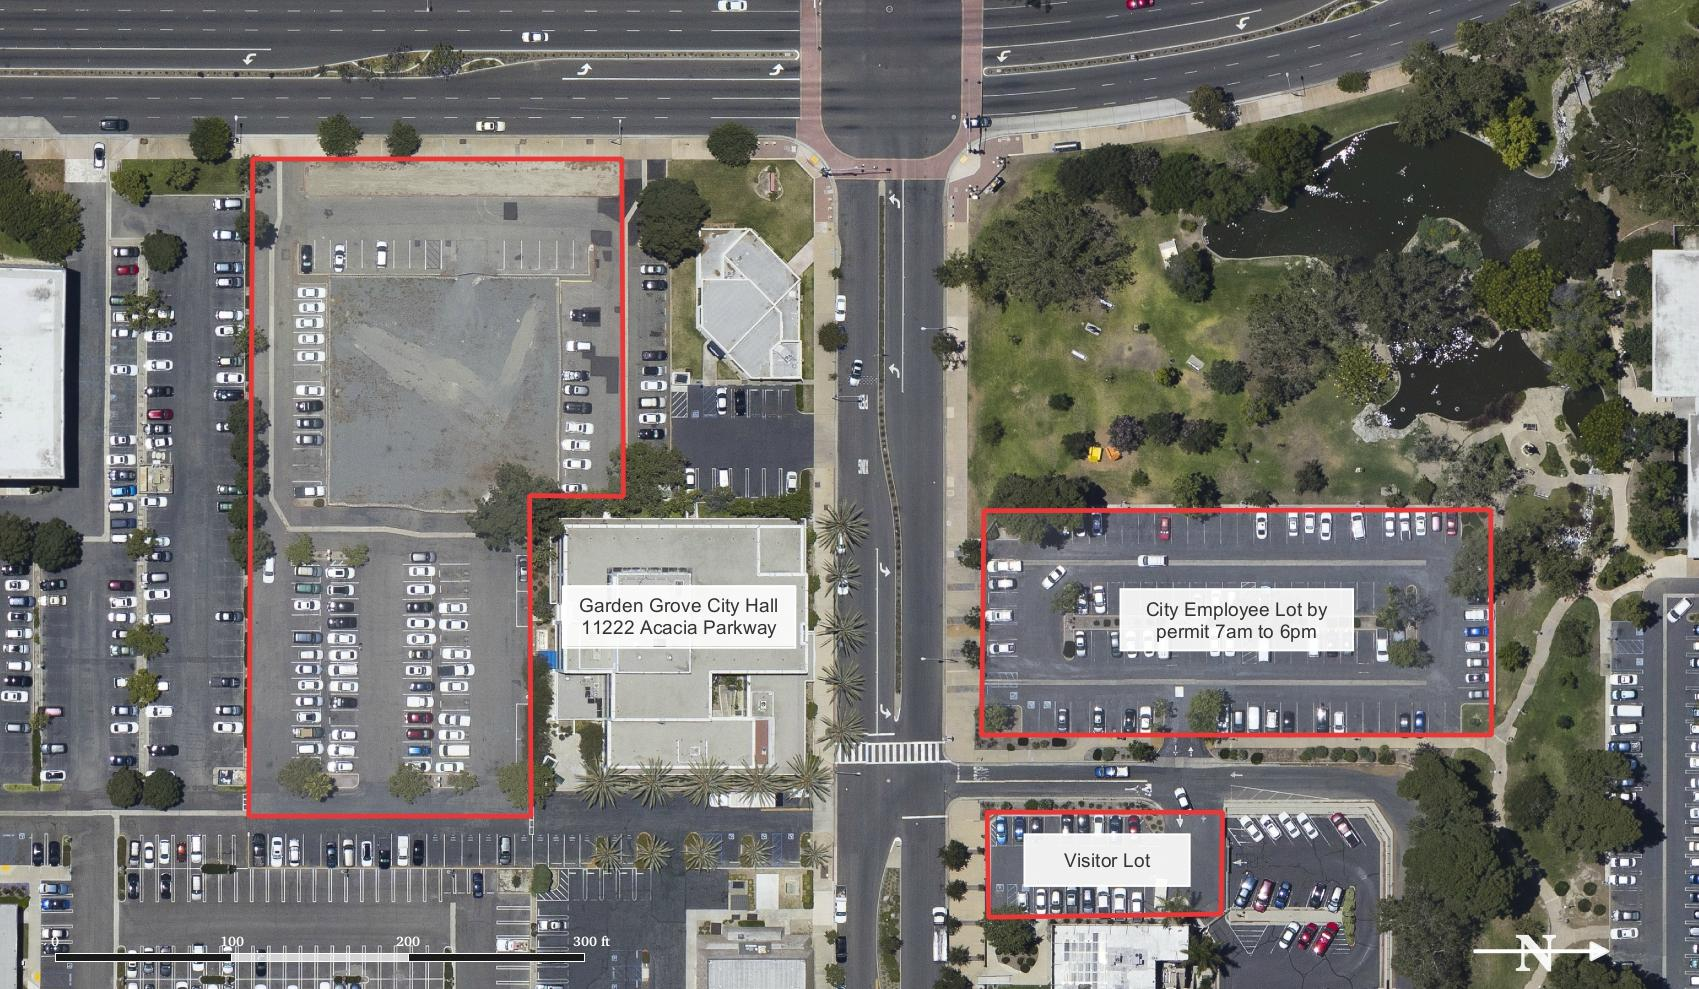 New Parking Area For Garden Grove City Hall City Of Garden Grove